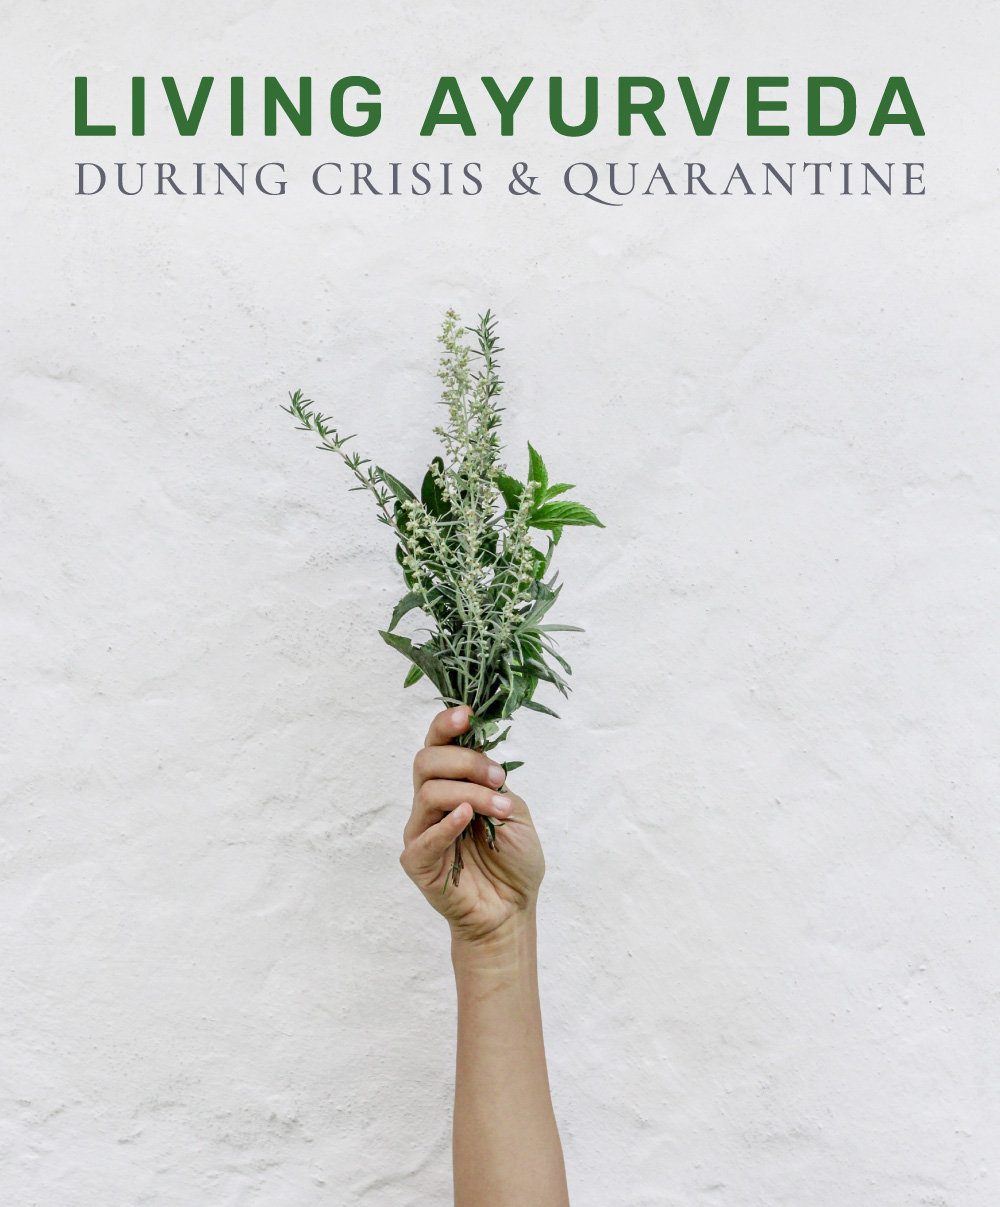 living-ayurveda-new-small.jpg